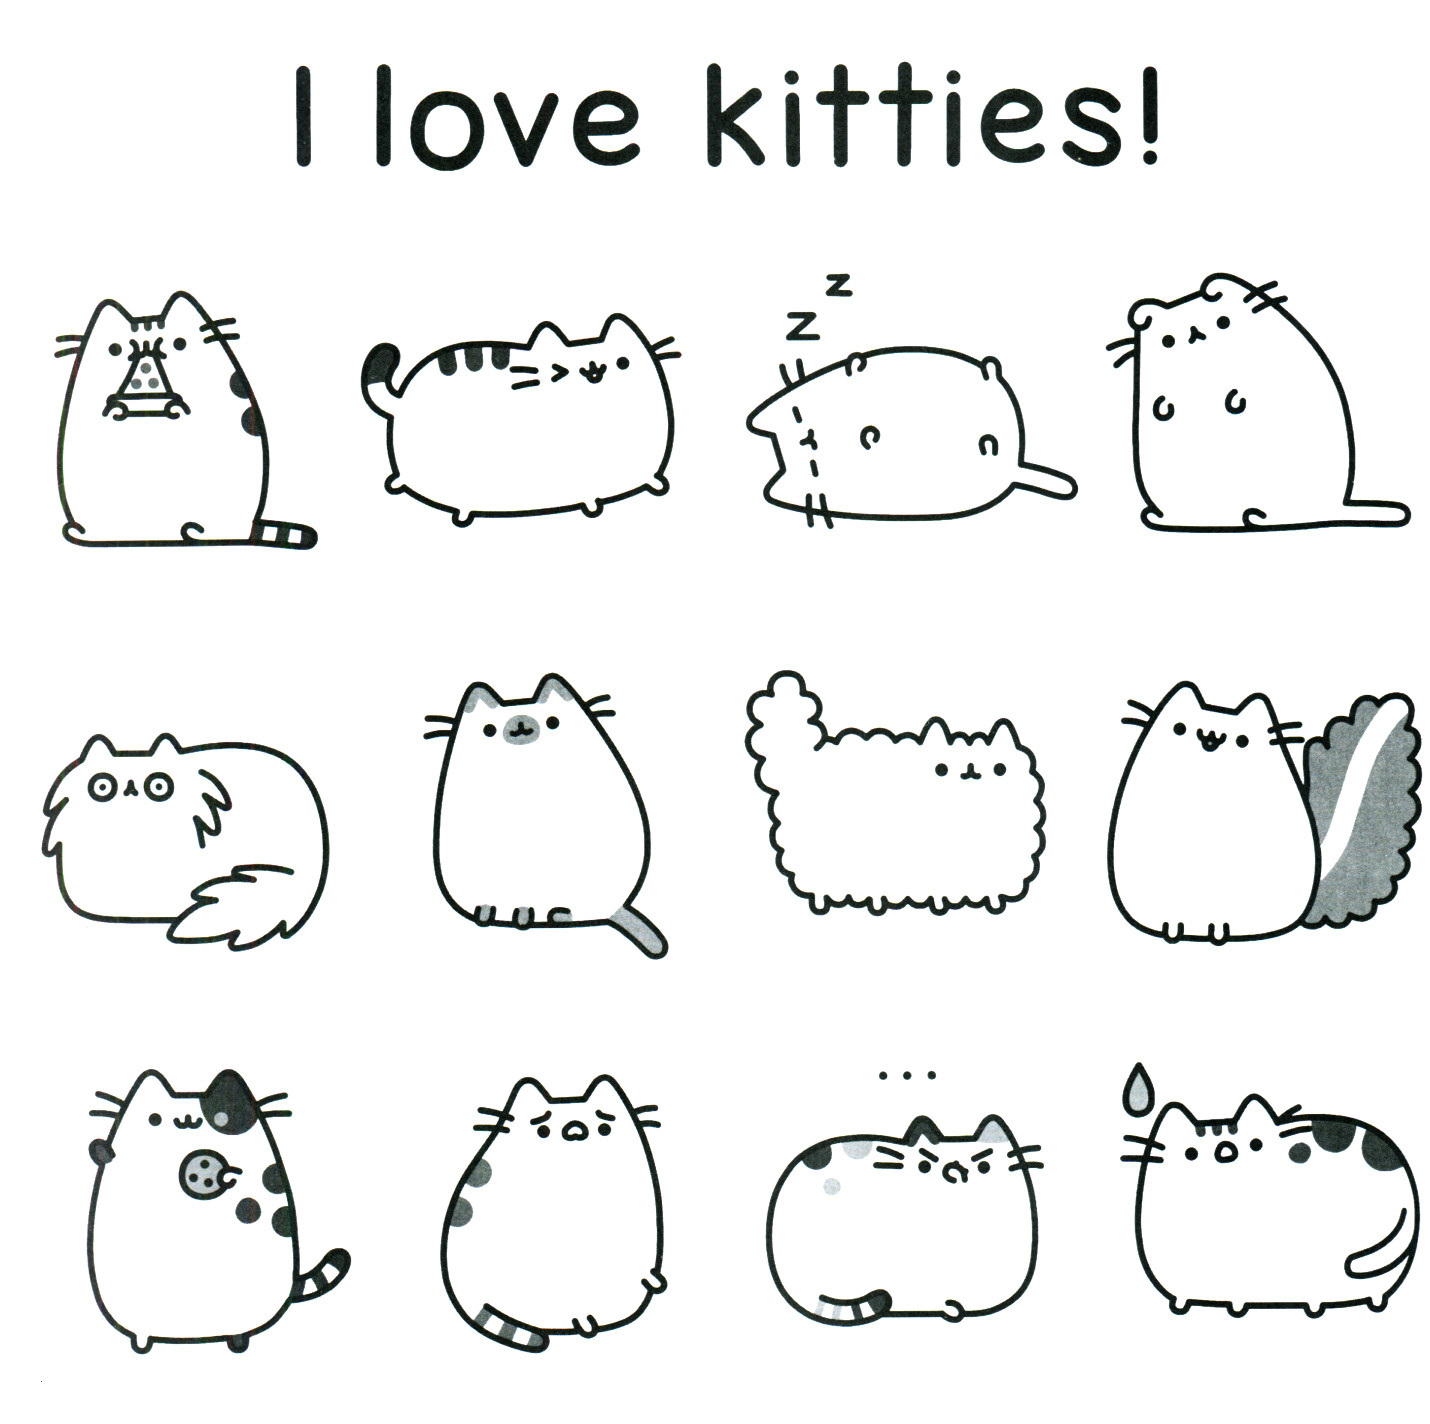 Pusheen Cat Coloring Pages Pusheen The Cat Coloring Pages Party Print Page 1 Ayushseminarmaha